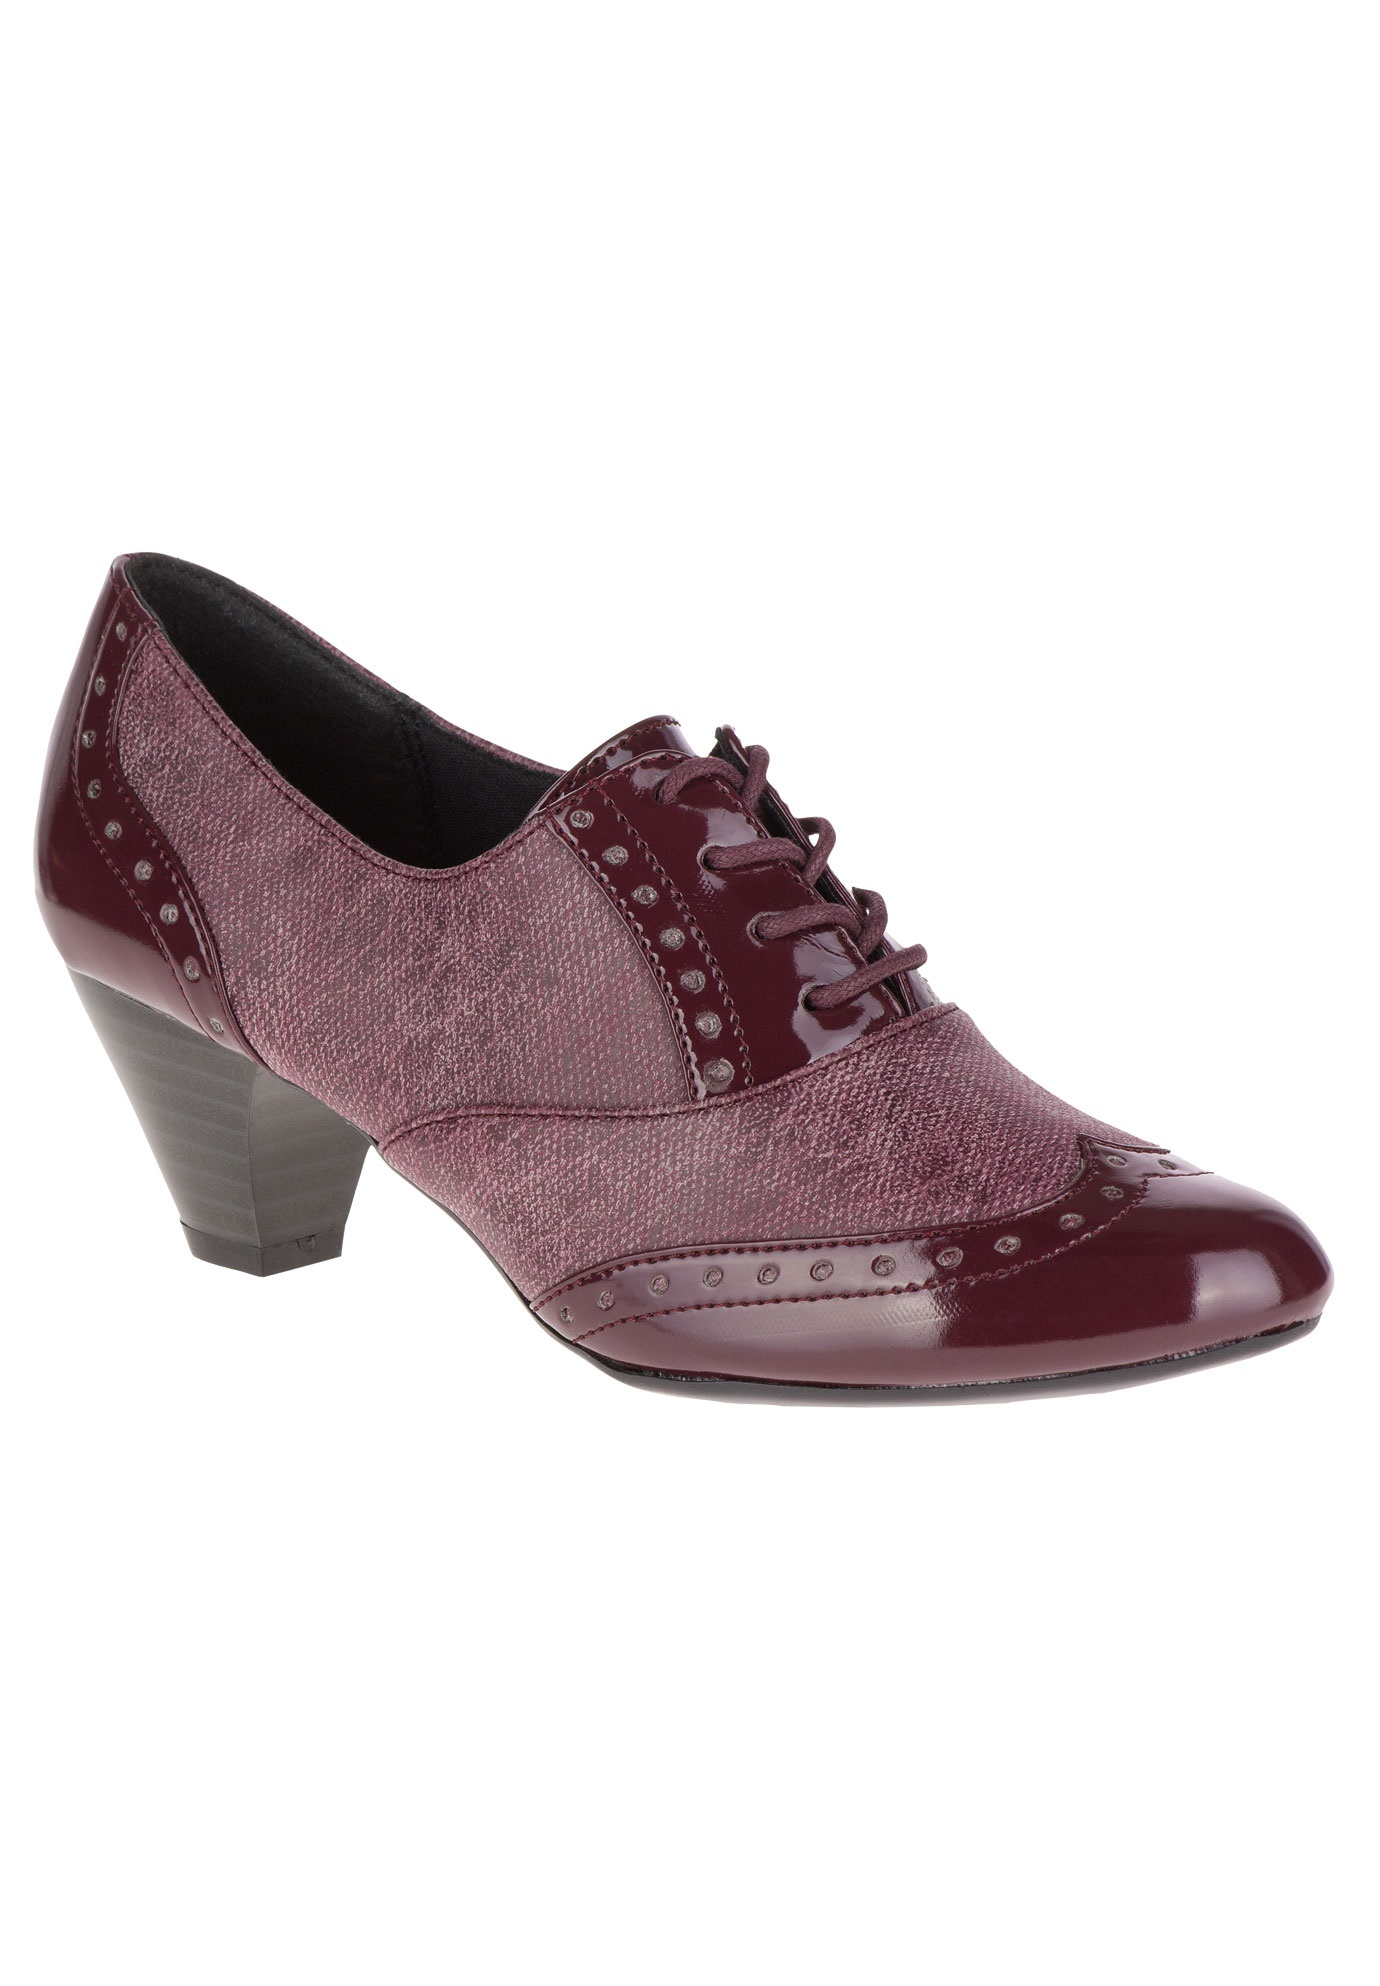 Gianna Pumps by Soft Style, BORDEAUX TWEED PATENT, hi-res